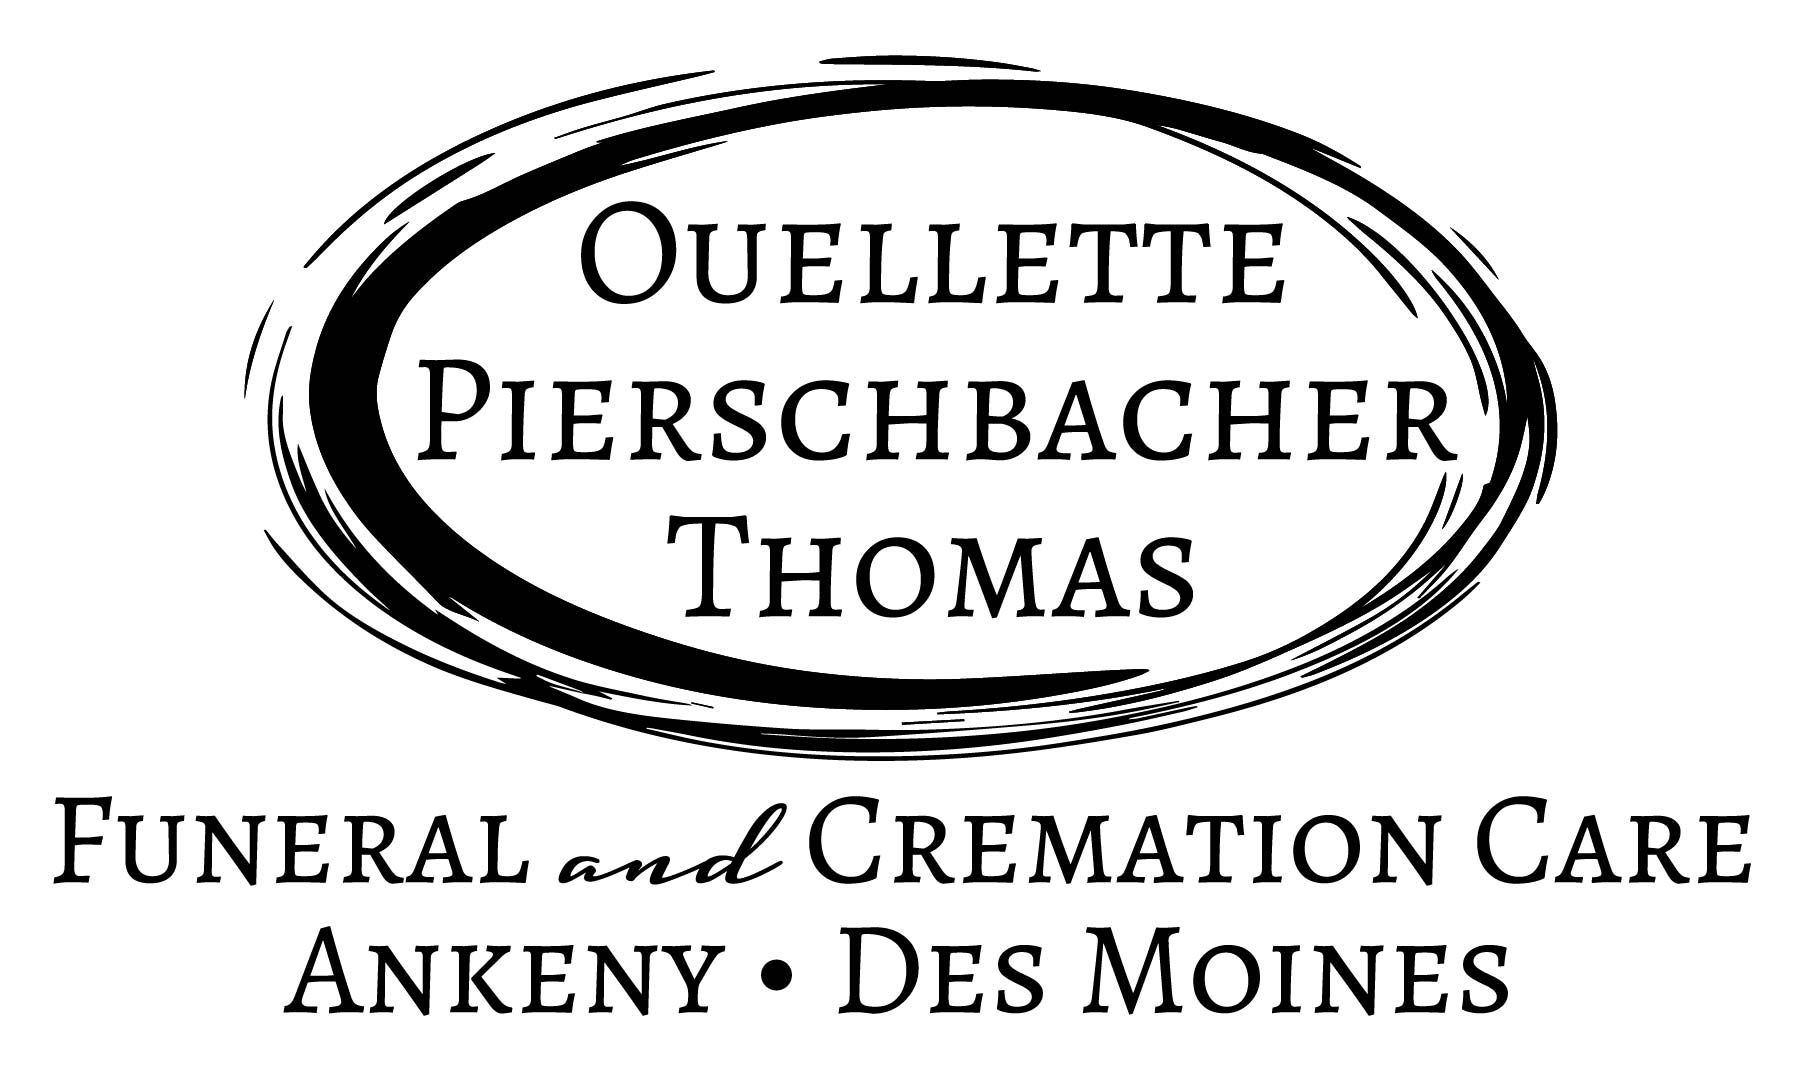 Ouellette, Pierschbacher & Thomas Funeral & Cremation Care